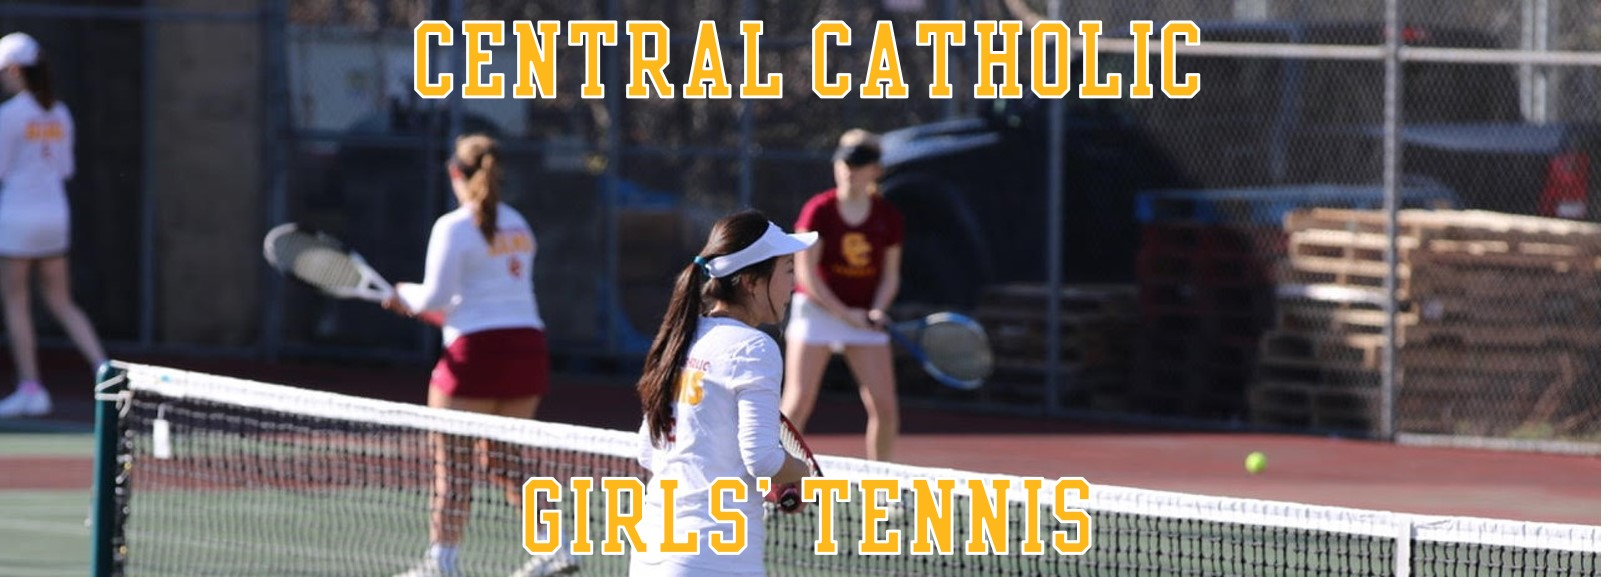 central single catholic girls Lafayette central catholic knights took on the delphi oracles last night and came away with the victory cc's team score 200 delphi's team score 208.